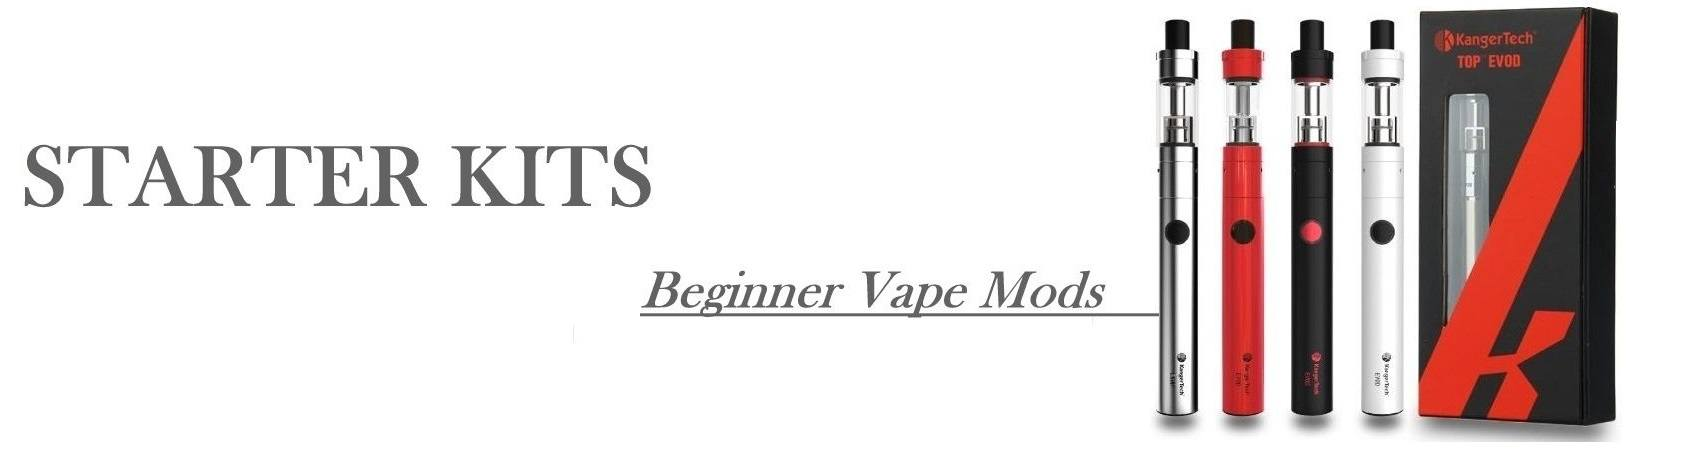 Begginner Ecig Starter Kits and Vaping Mods